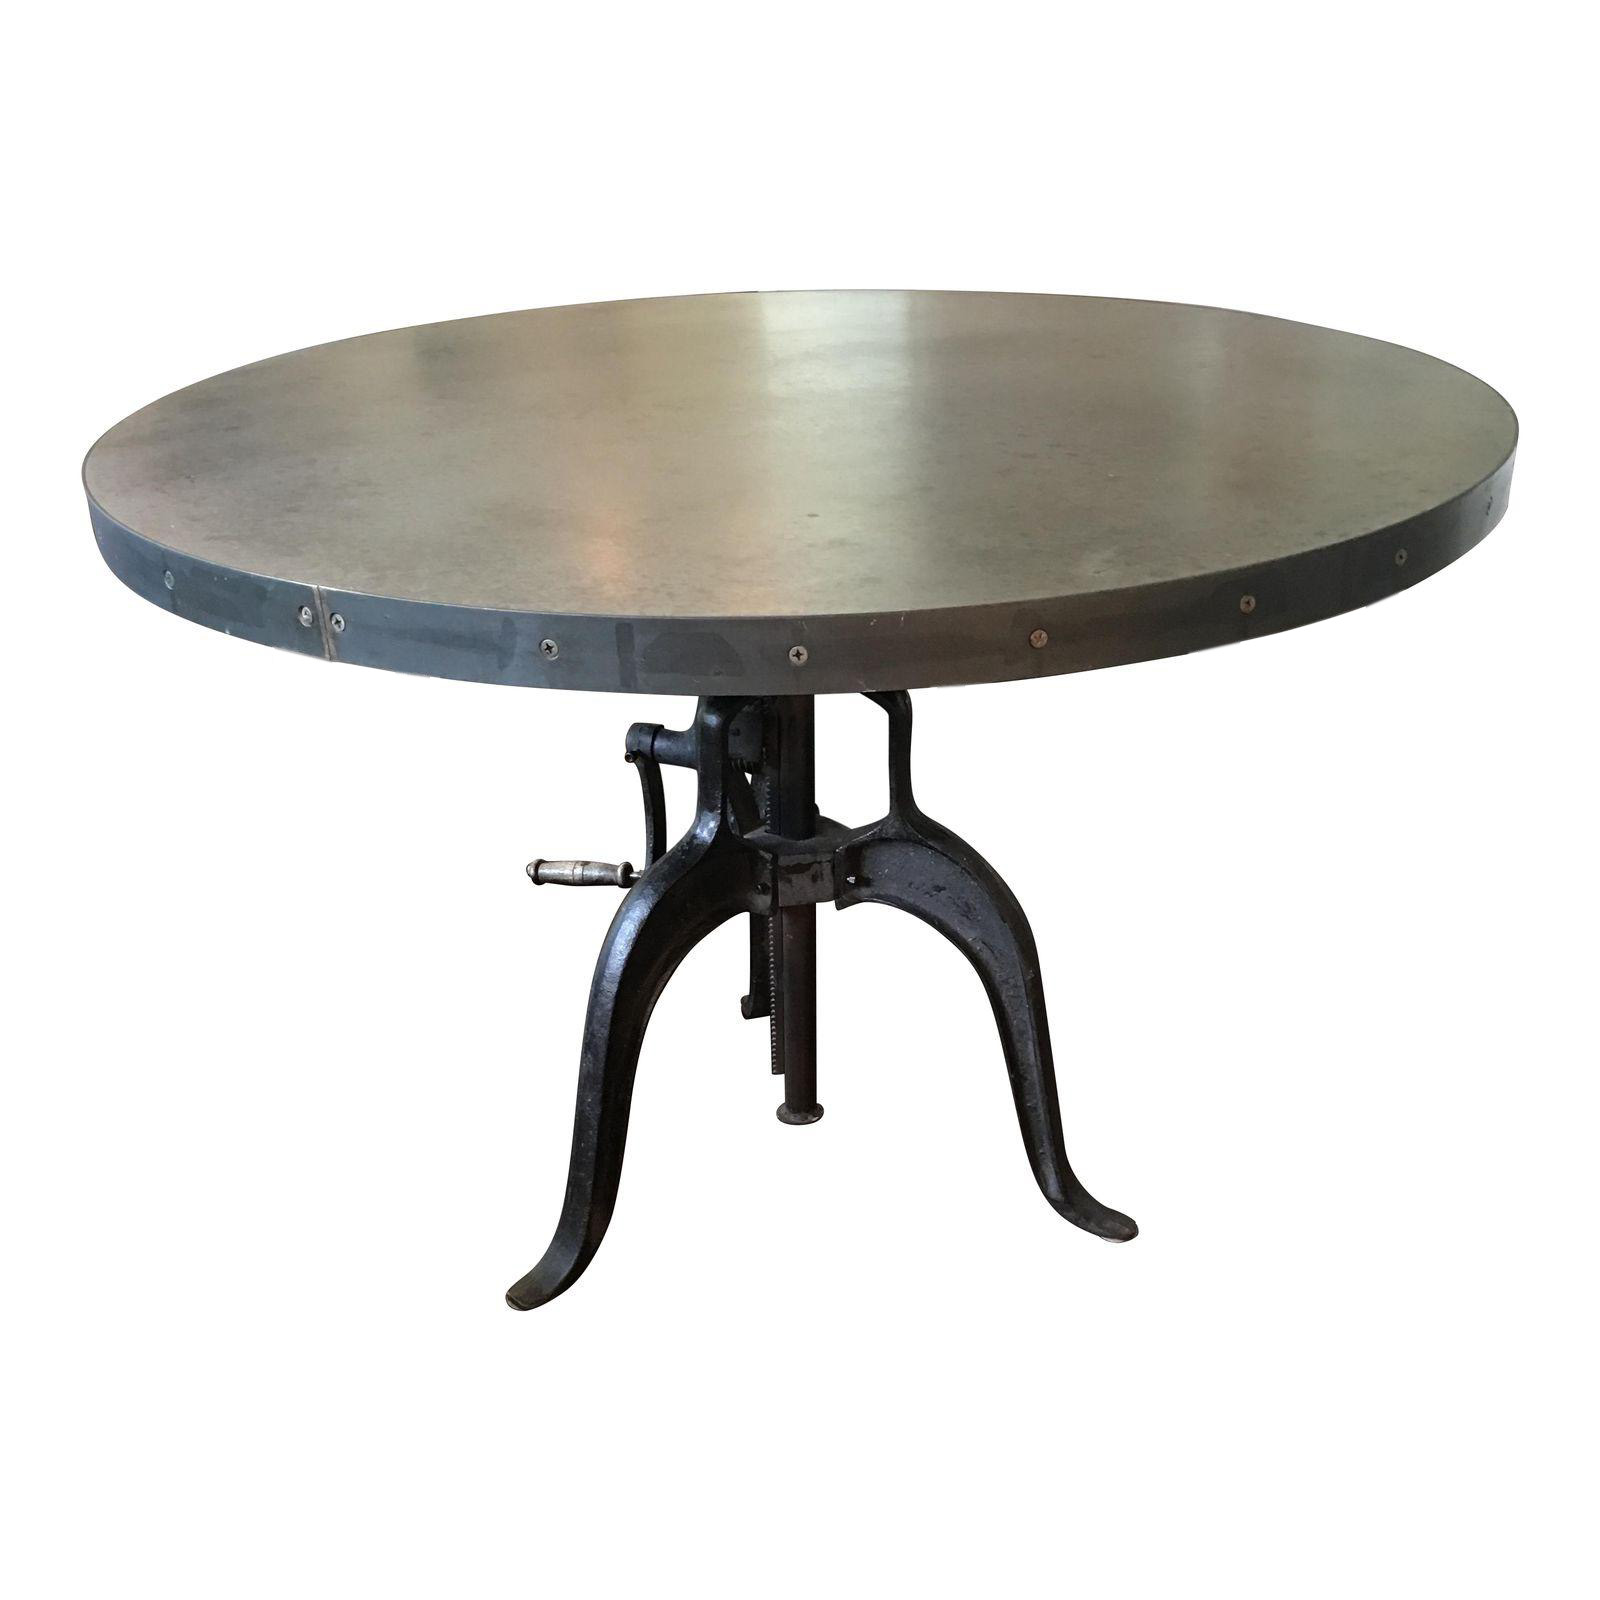 Industrial Adjustable Height Dining Table Chairish : 673a0083 ca4b 475c 808d 55760b1909c5aspectfitampwidth640ampheight640 from www.chairish.com size 640 x 640 jpeg 21kB